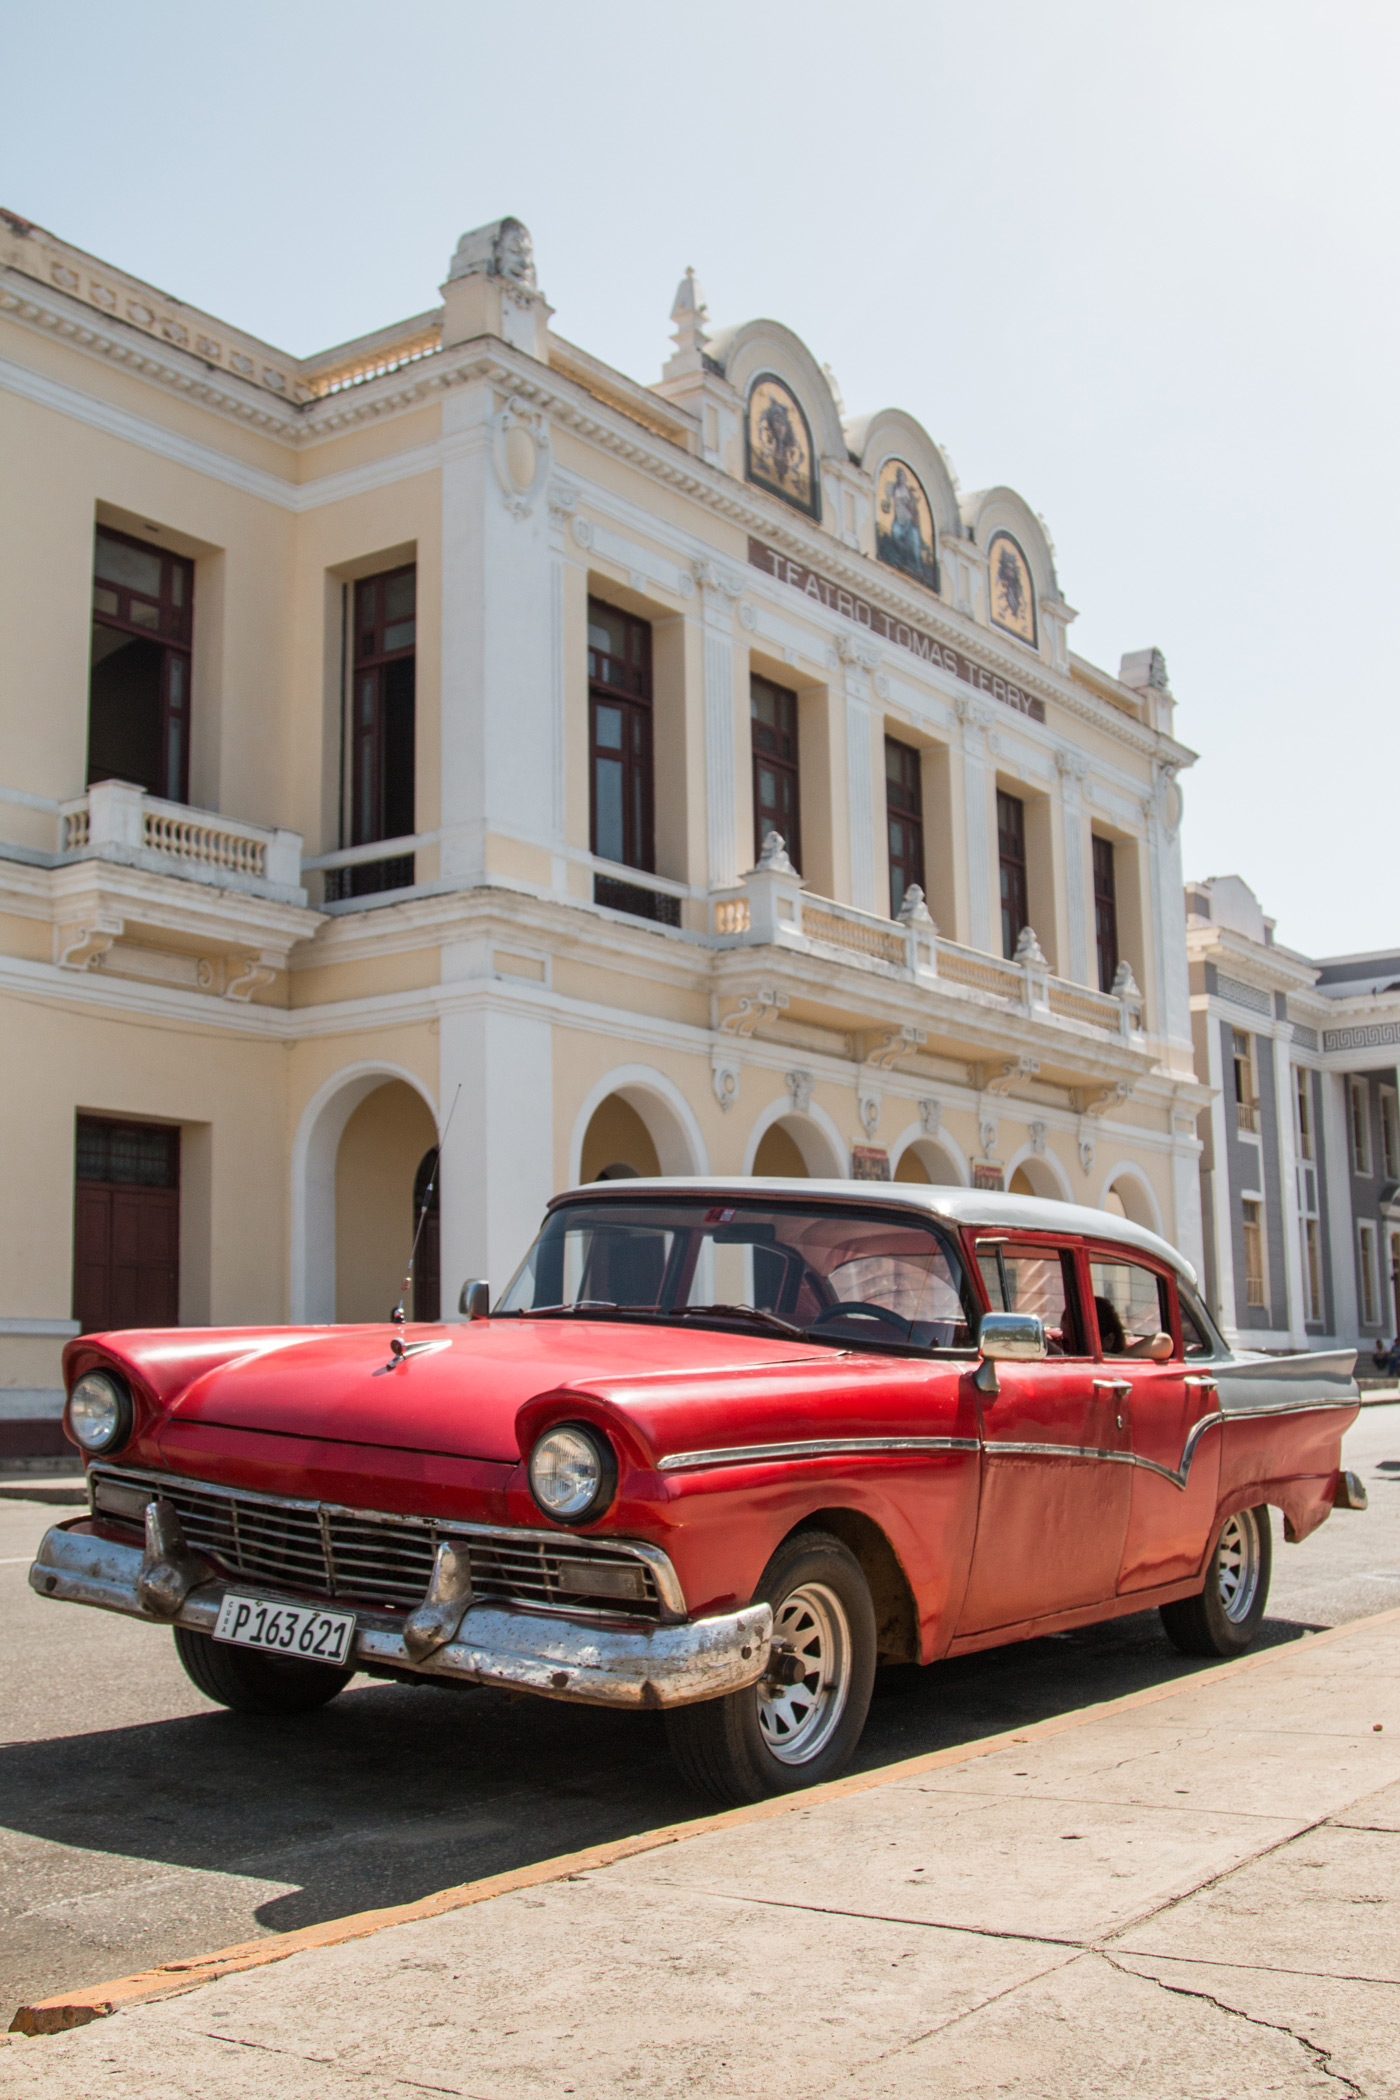 Postcard shot in Cienfuegos